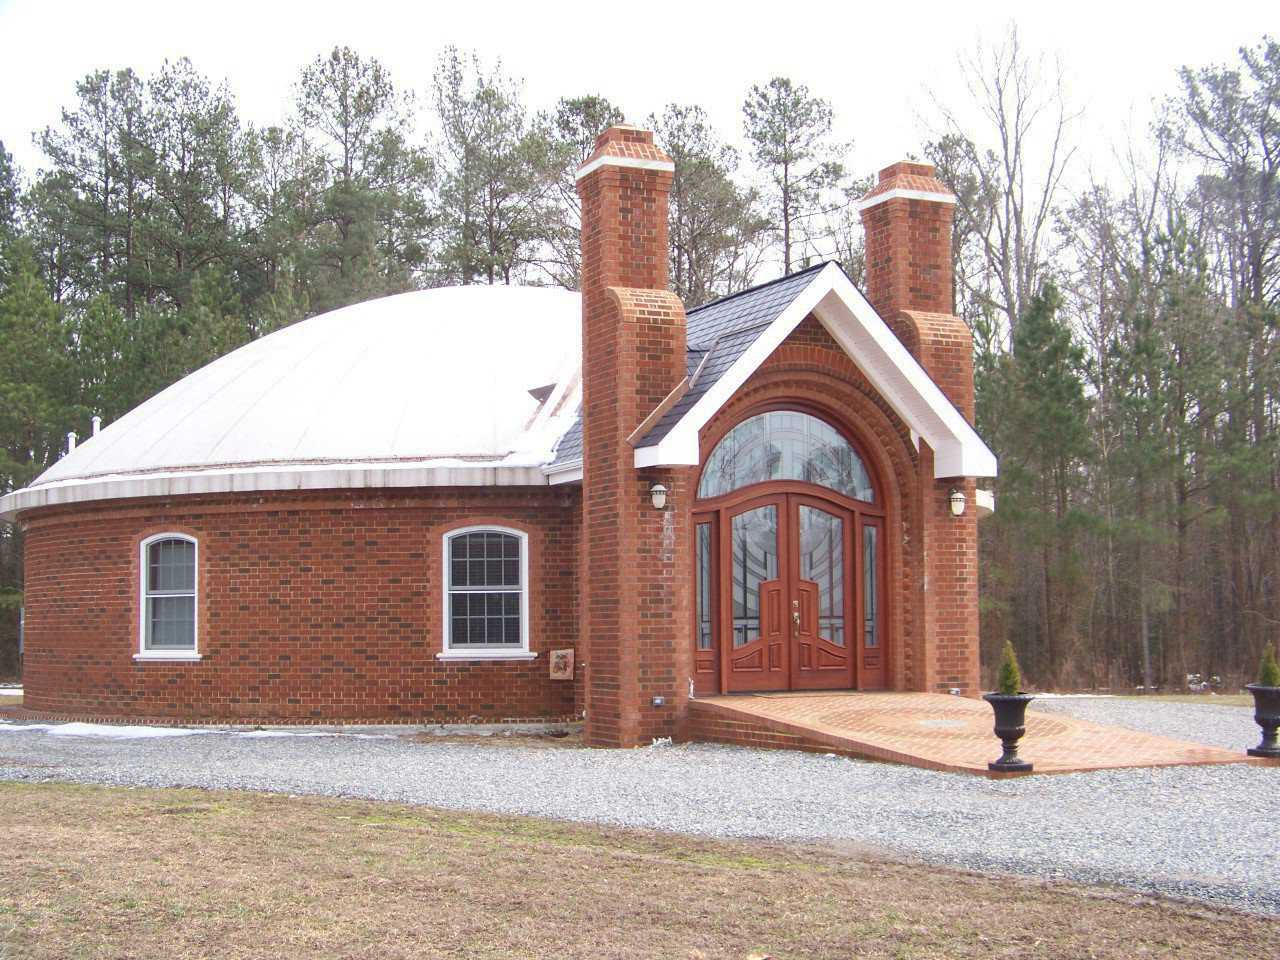 Sty Manor — Joel Emerson and his dad, both creative, professional, master brick masons, designed this dome home encased in brick.